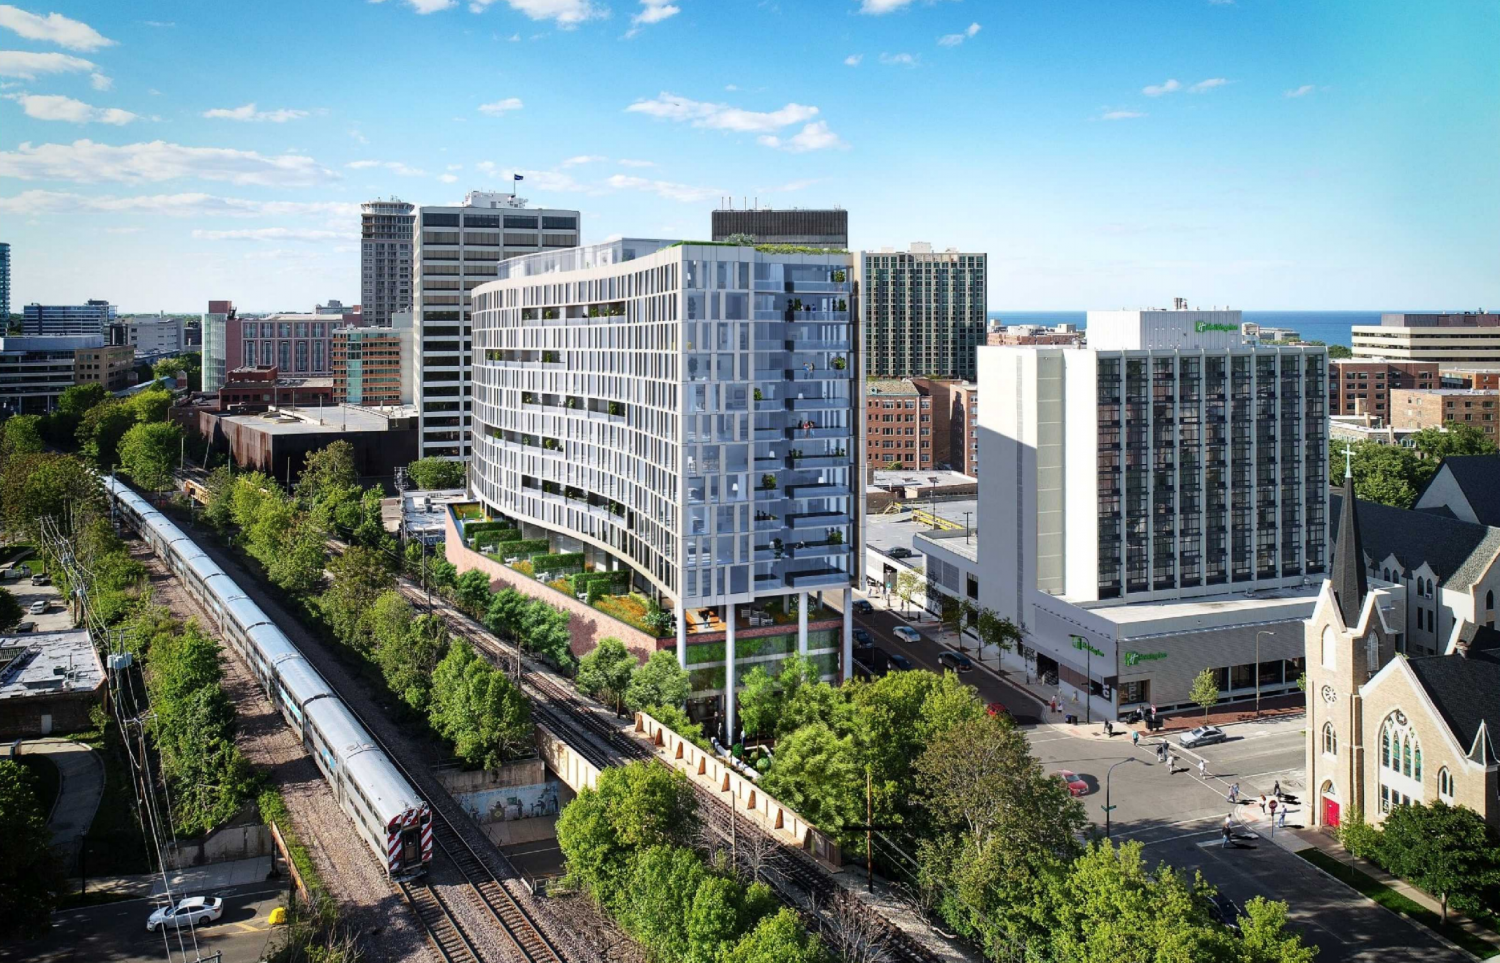 An+artist+rendering+of+the+proposed+16-story+building+on+Sherman+Avenue.